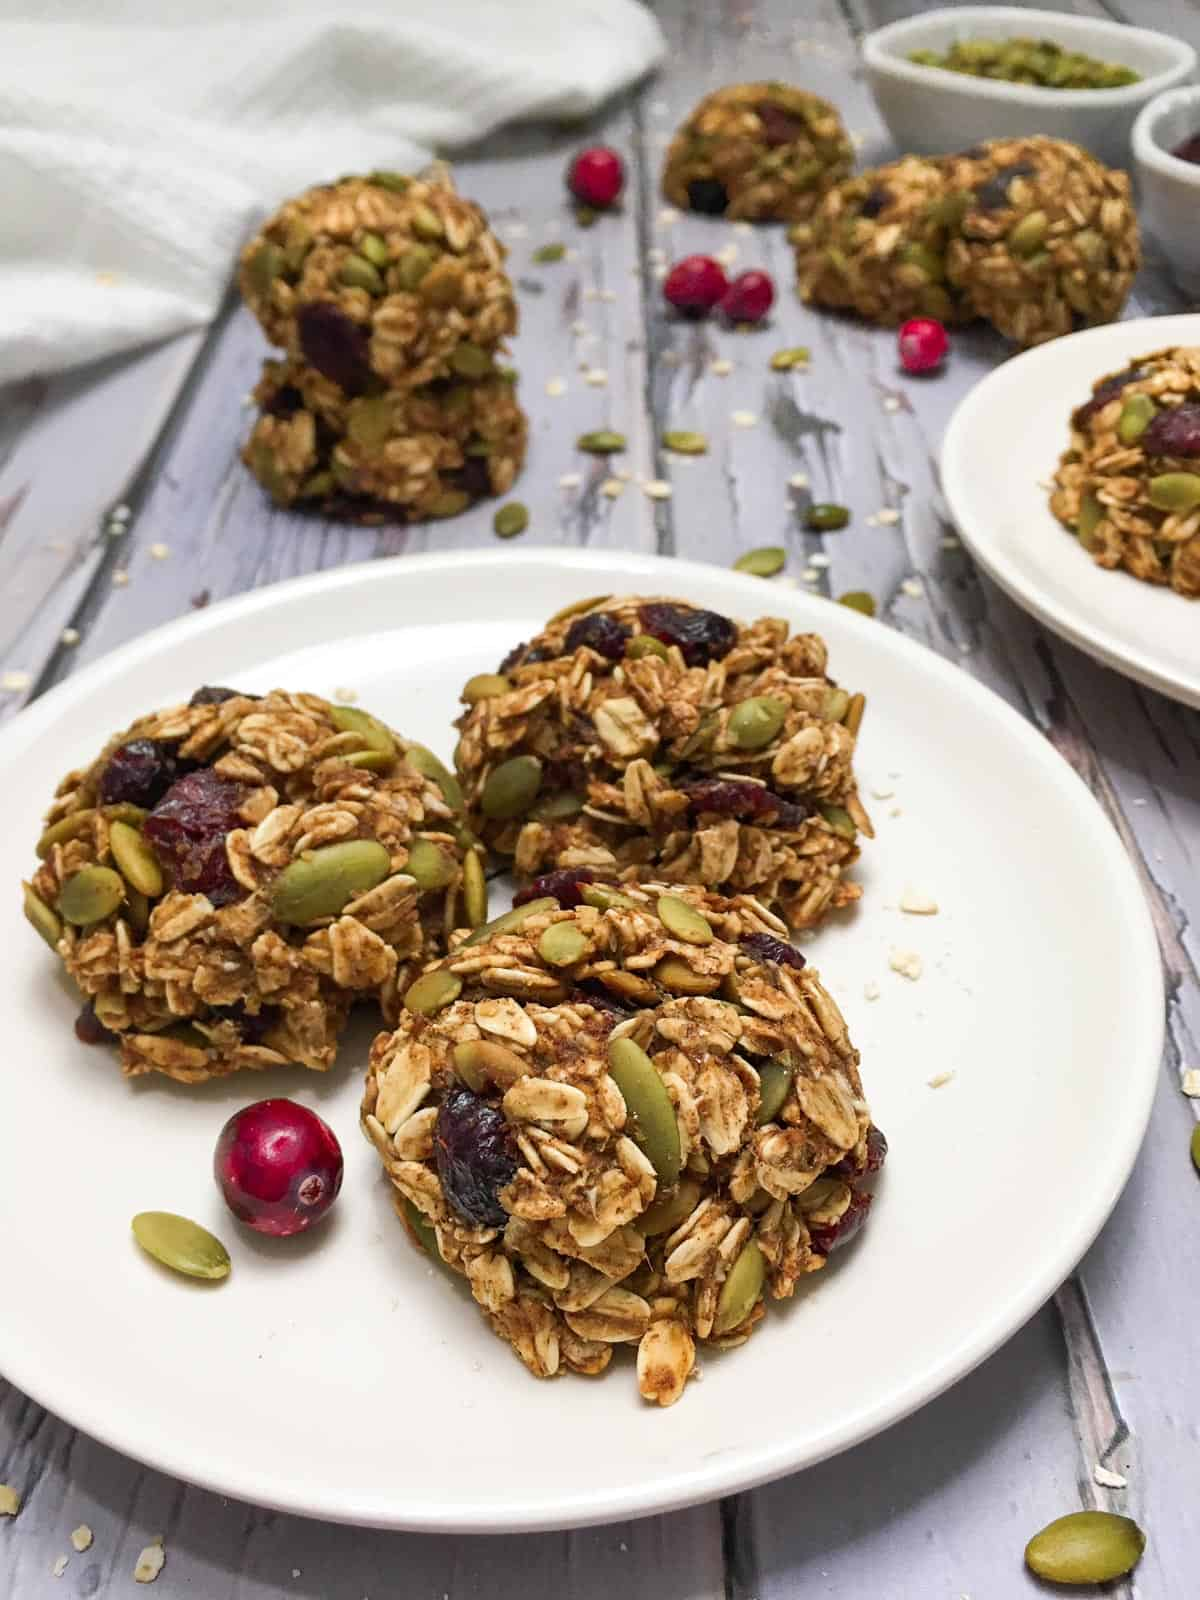 Three cranberry cookies on white plate with more cookies scattered in the background.